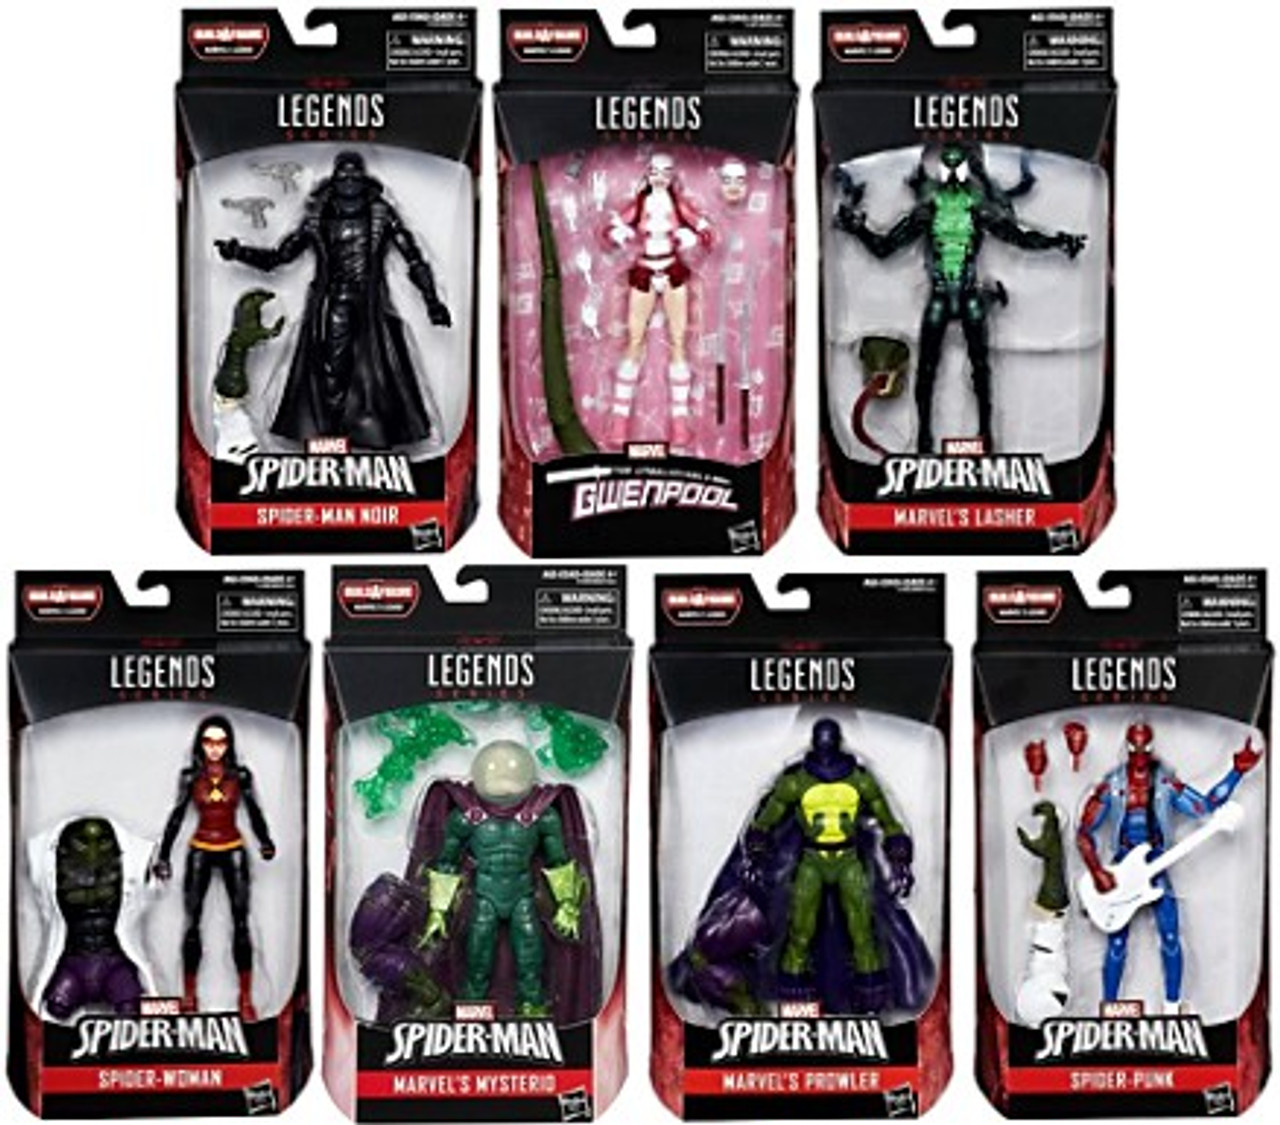 518c9436744f1 Spider-Man Marvel Legends Lizard Series Set of 7 Action Figures